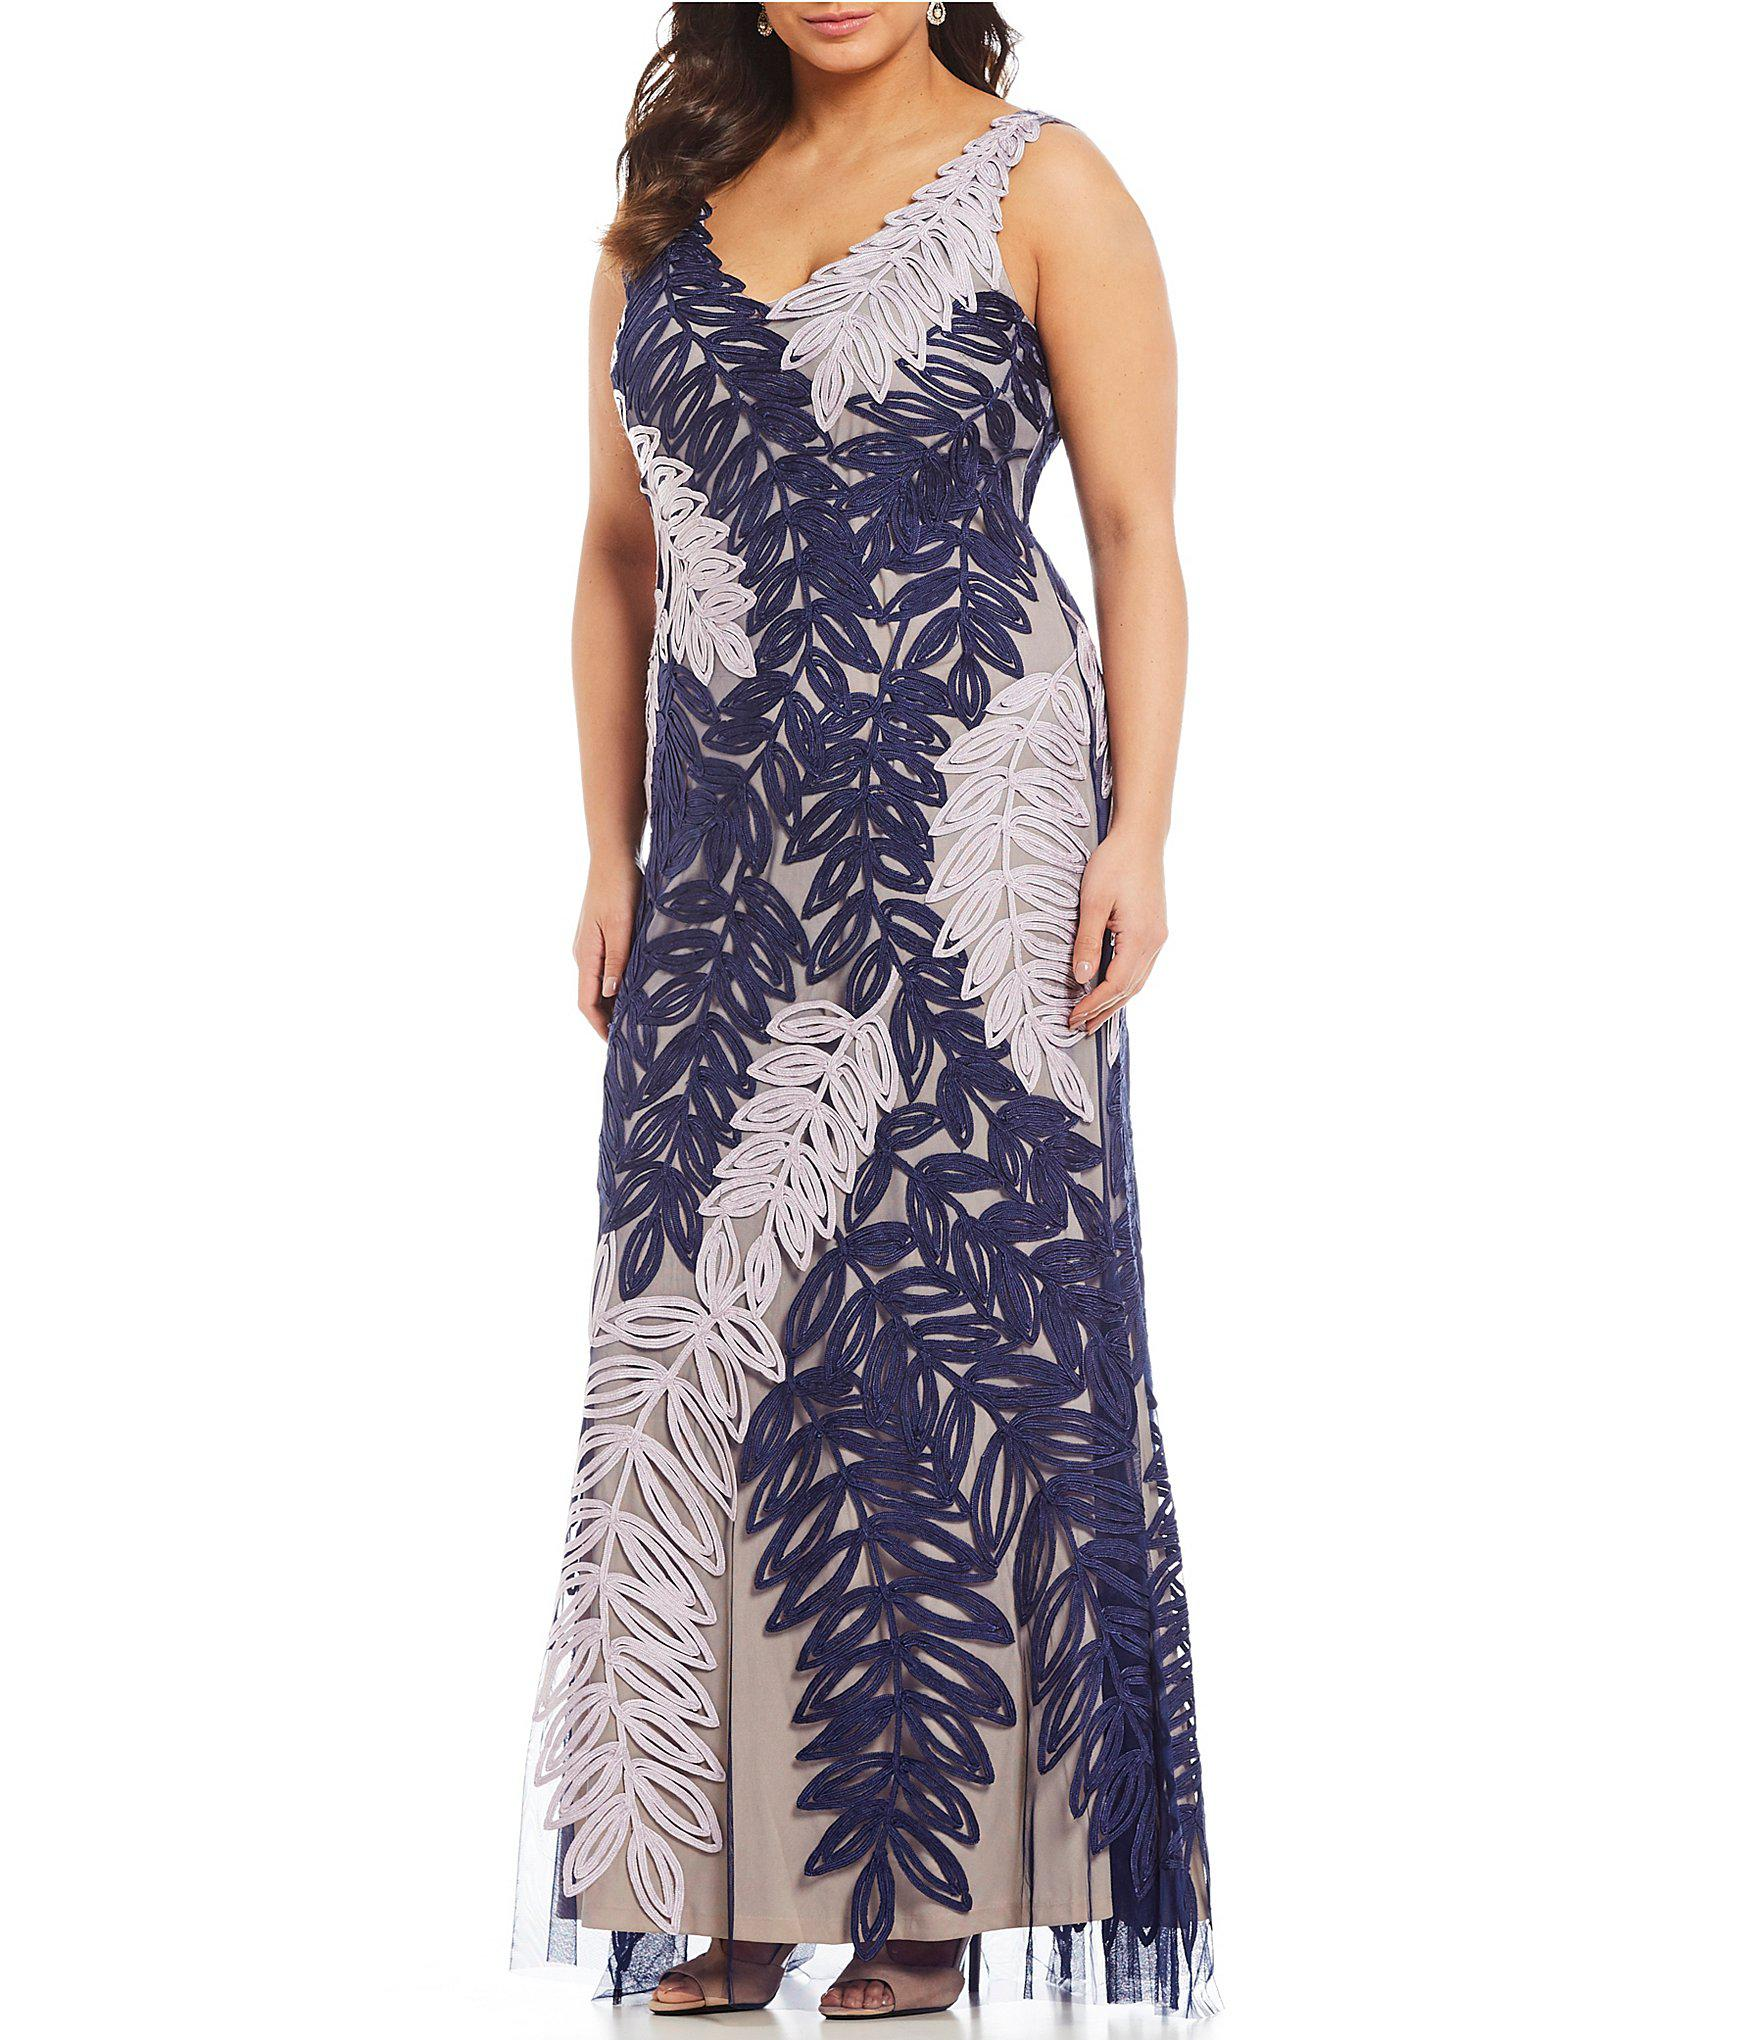 f444364f1a8 Lyst - JS Collections Plus Size V-neck Soutache Gown in Blue - Save 69%